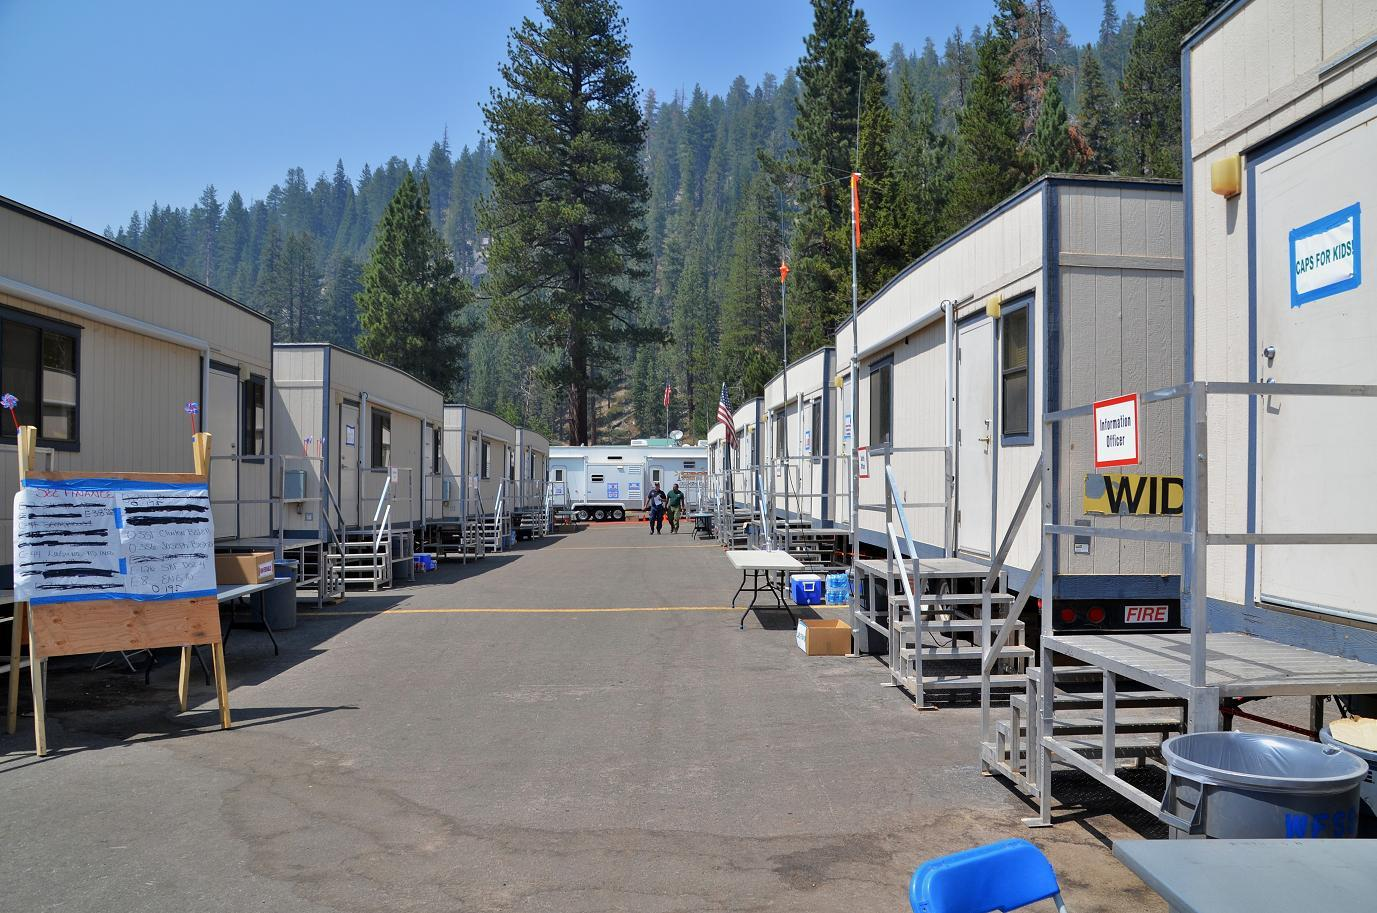 Trailer Row at Aspen Fire Camp - photo by Gina Clugston